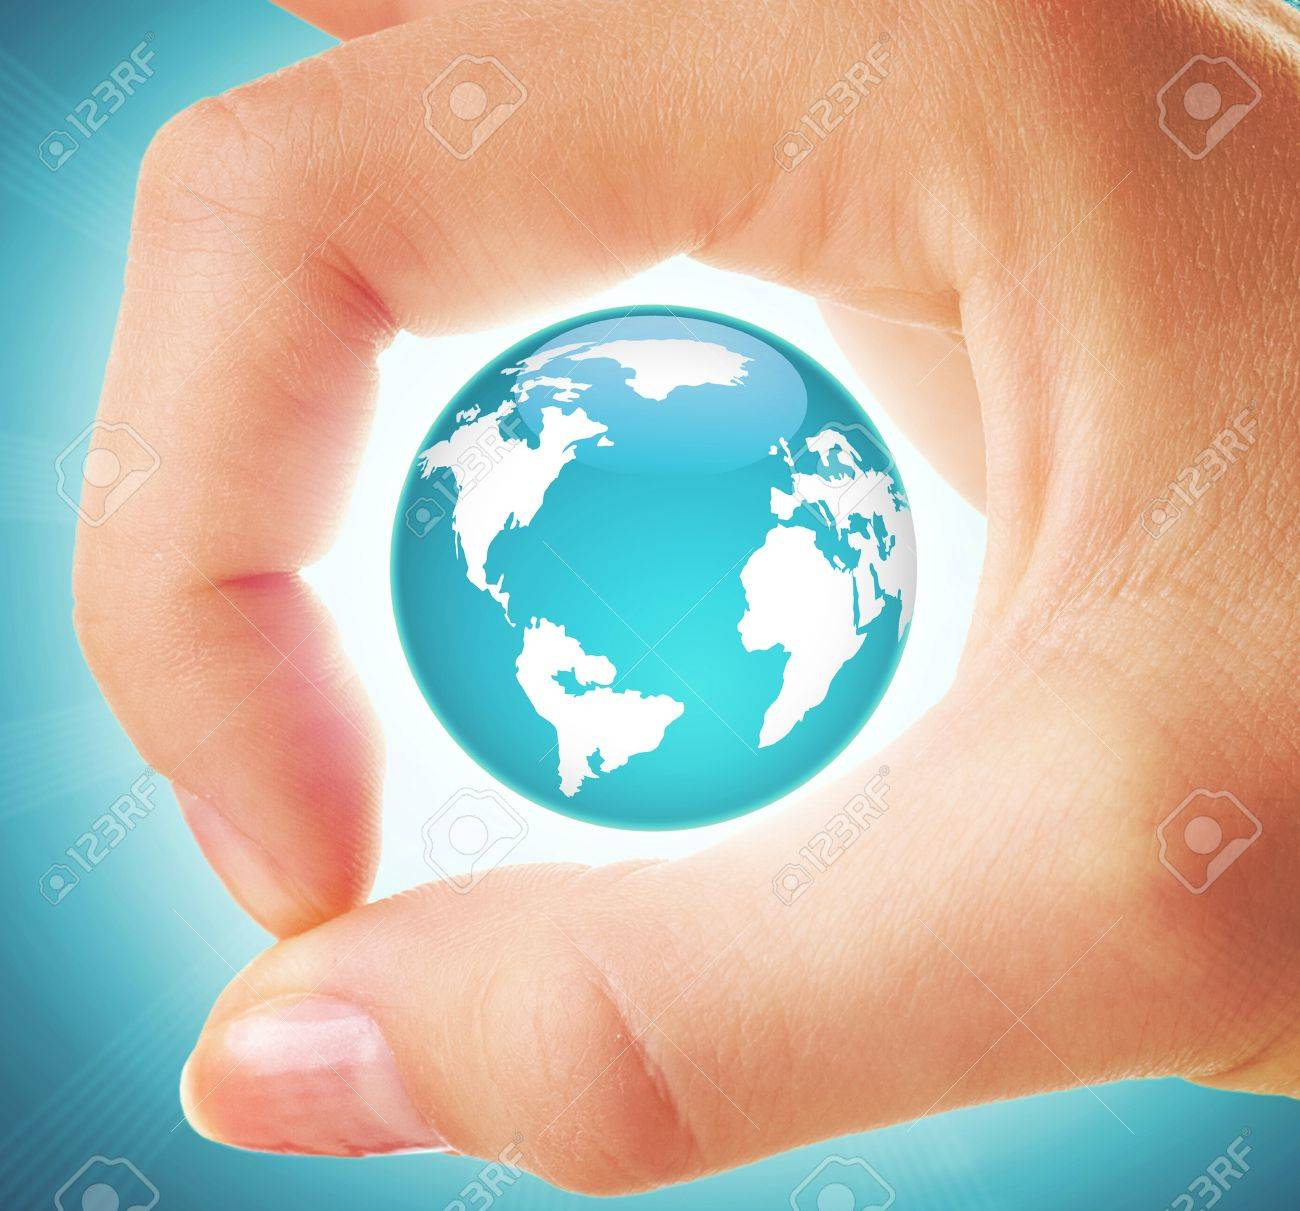 Creative image of earth model inside circle made up of human thumb and forefinger Stock Photo - 13949065